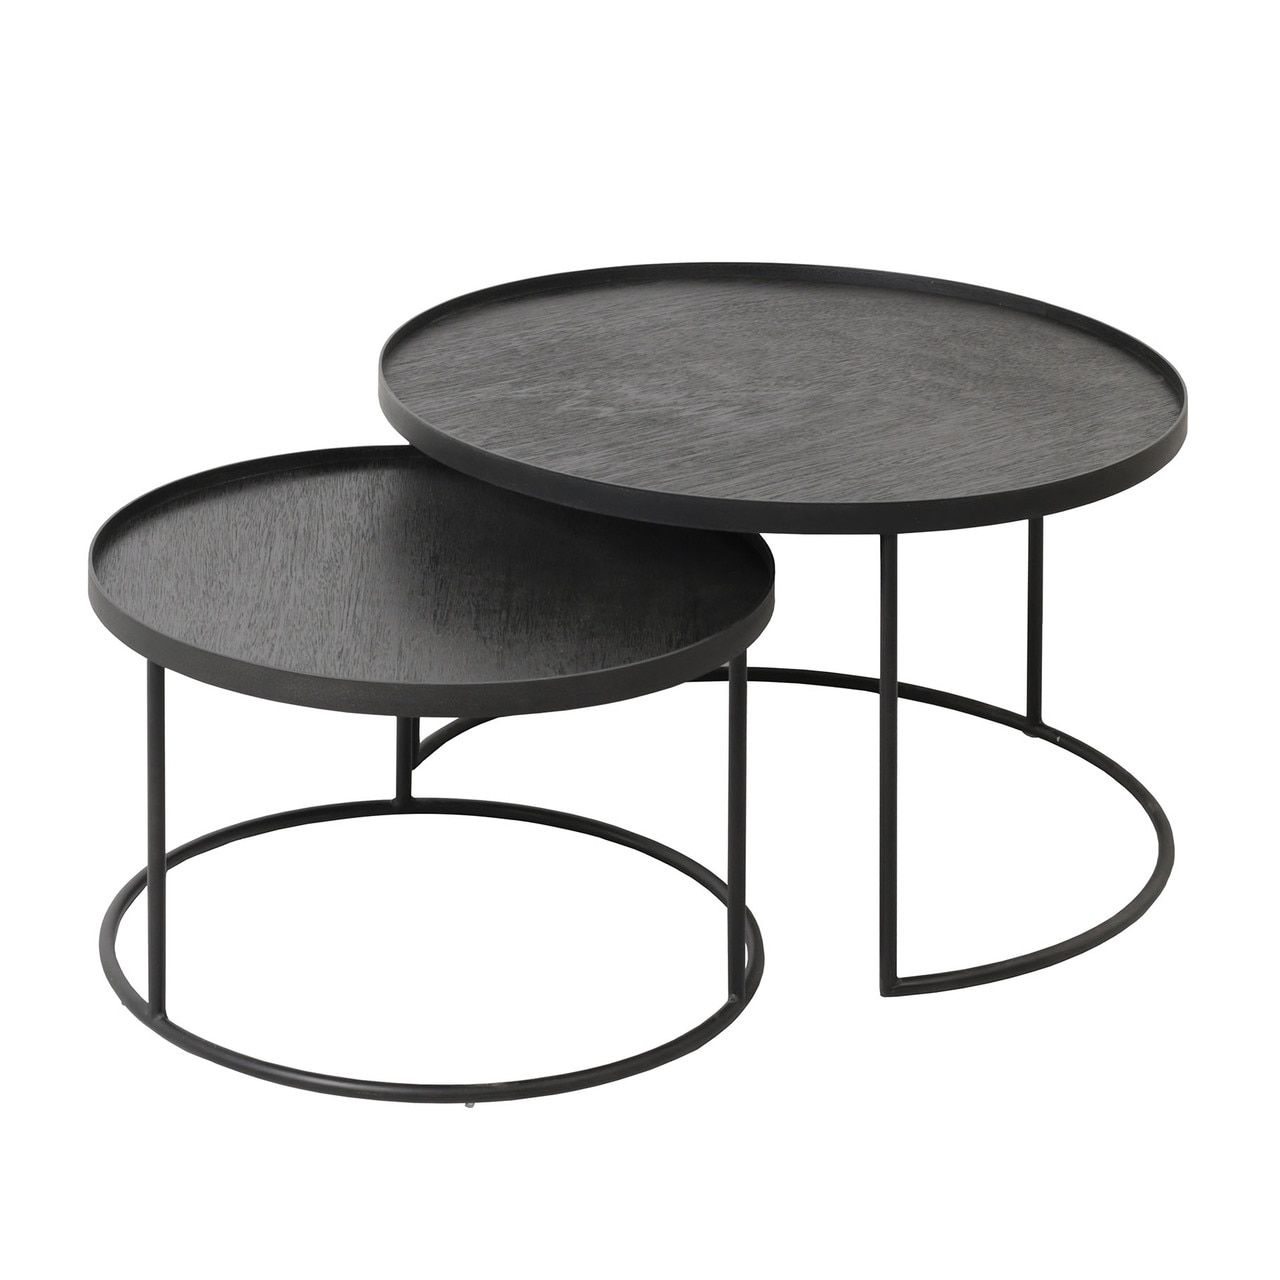 Round Nesting Tray Tables Set Low Nesting Coffee Tables Round Metal Coffee Table Round Nesting Coffee Tables [ 1280 x 1280 Pixel ]